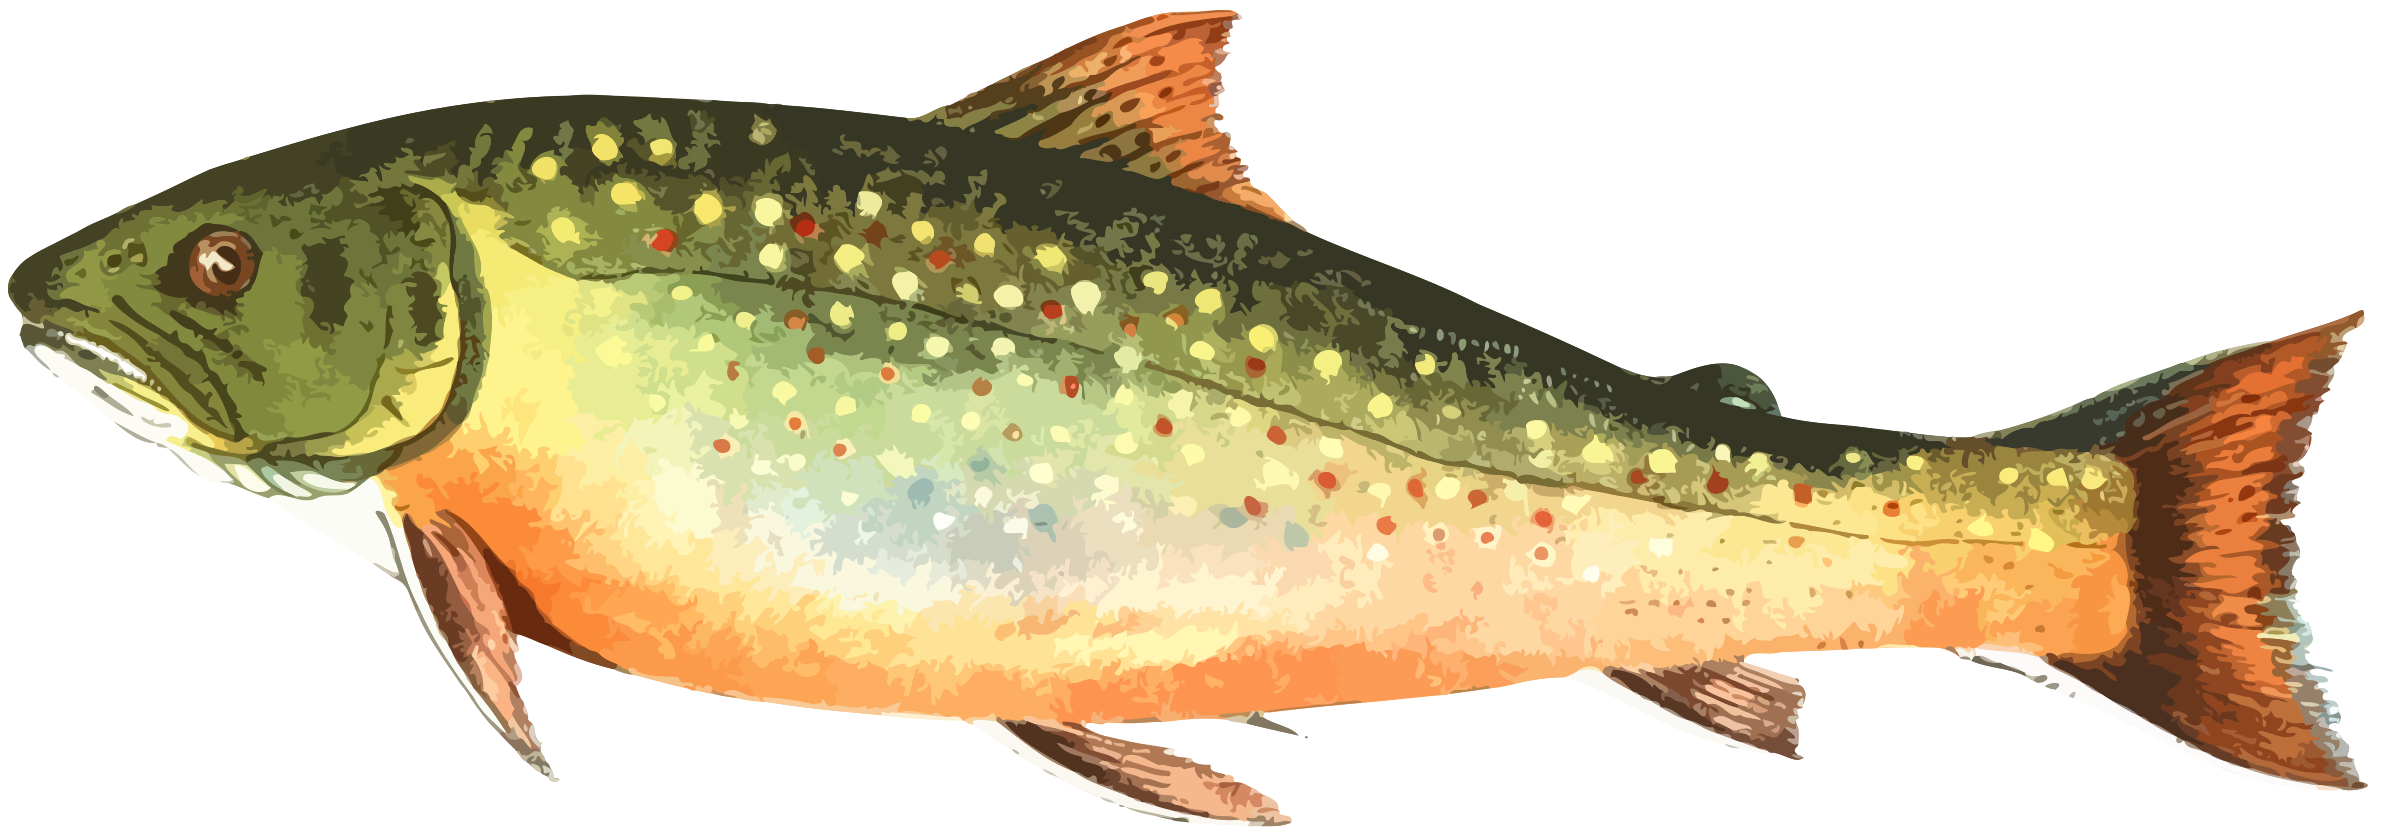 American brook icons png. Trout clipart speckled trout